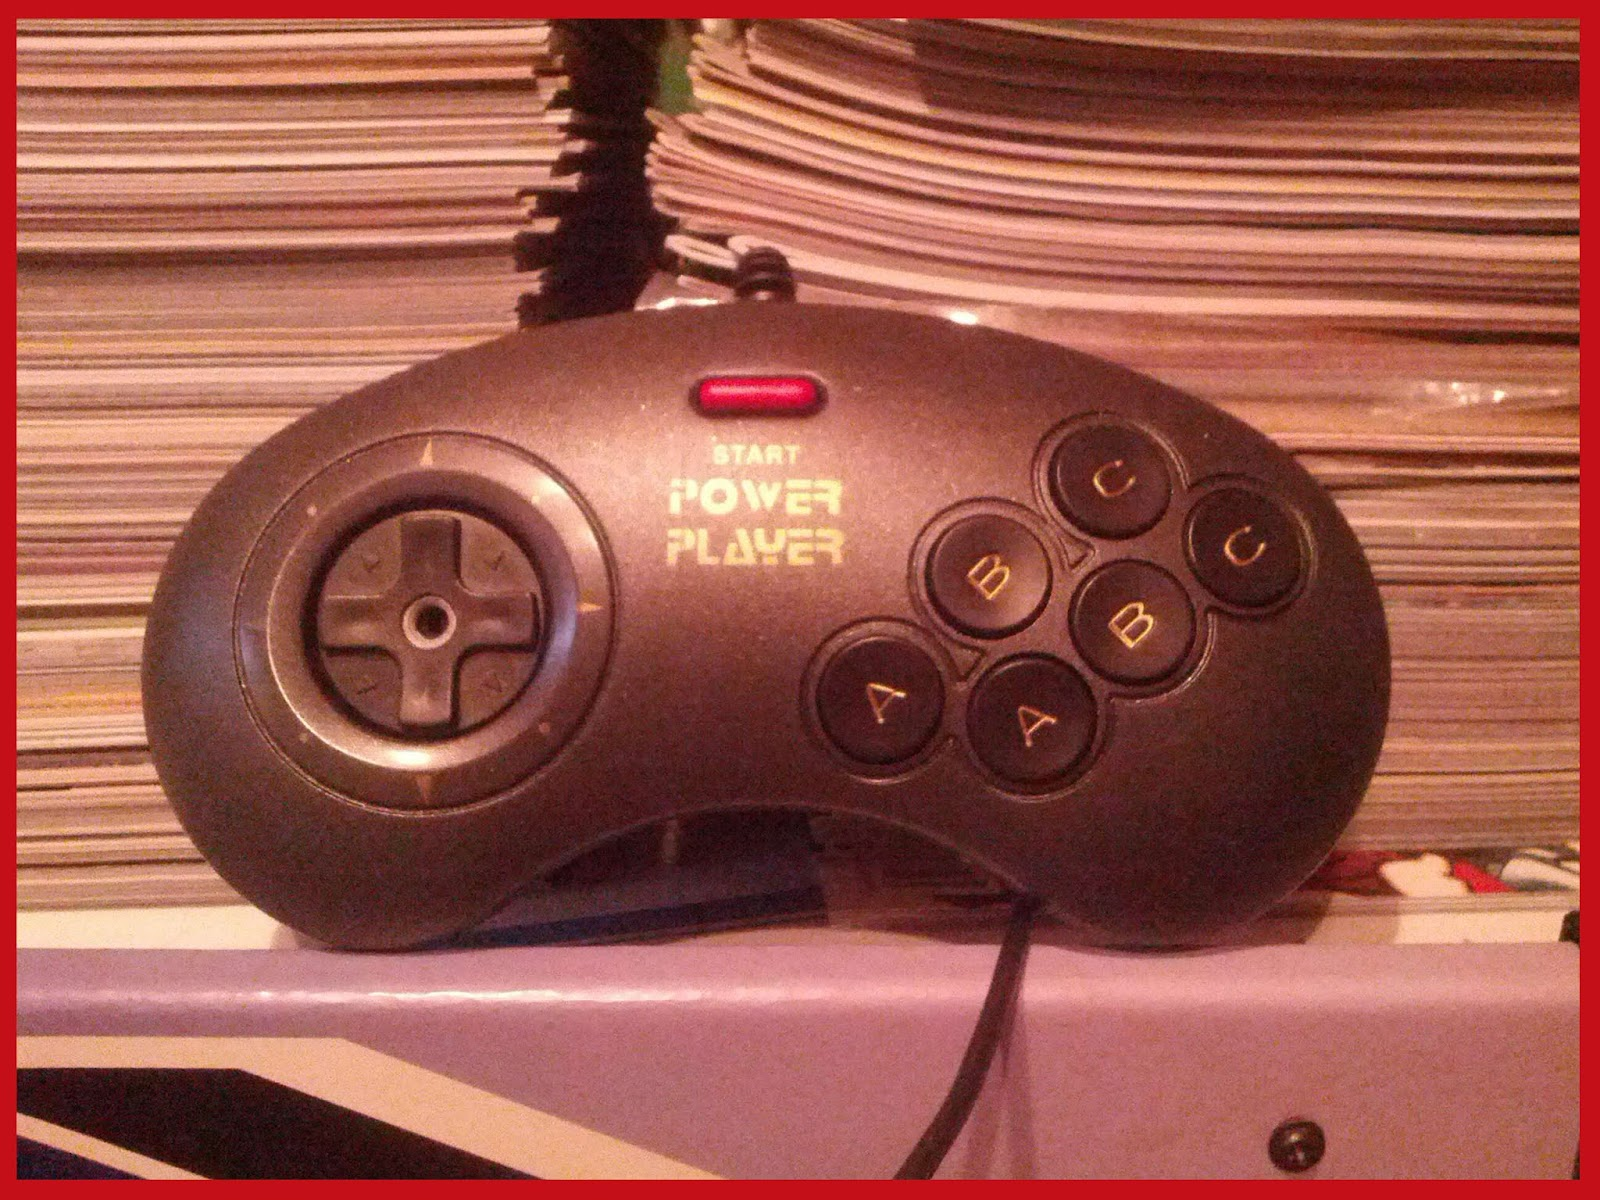 20 Years Before 2000: Power Player Super Joystick!